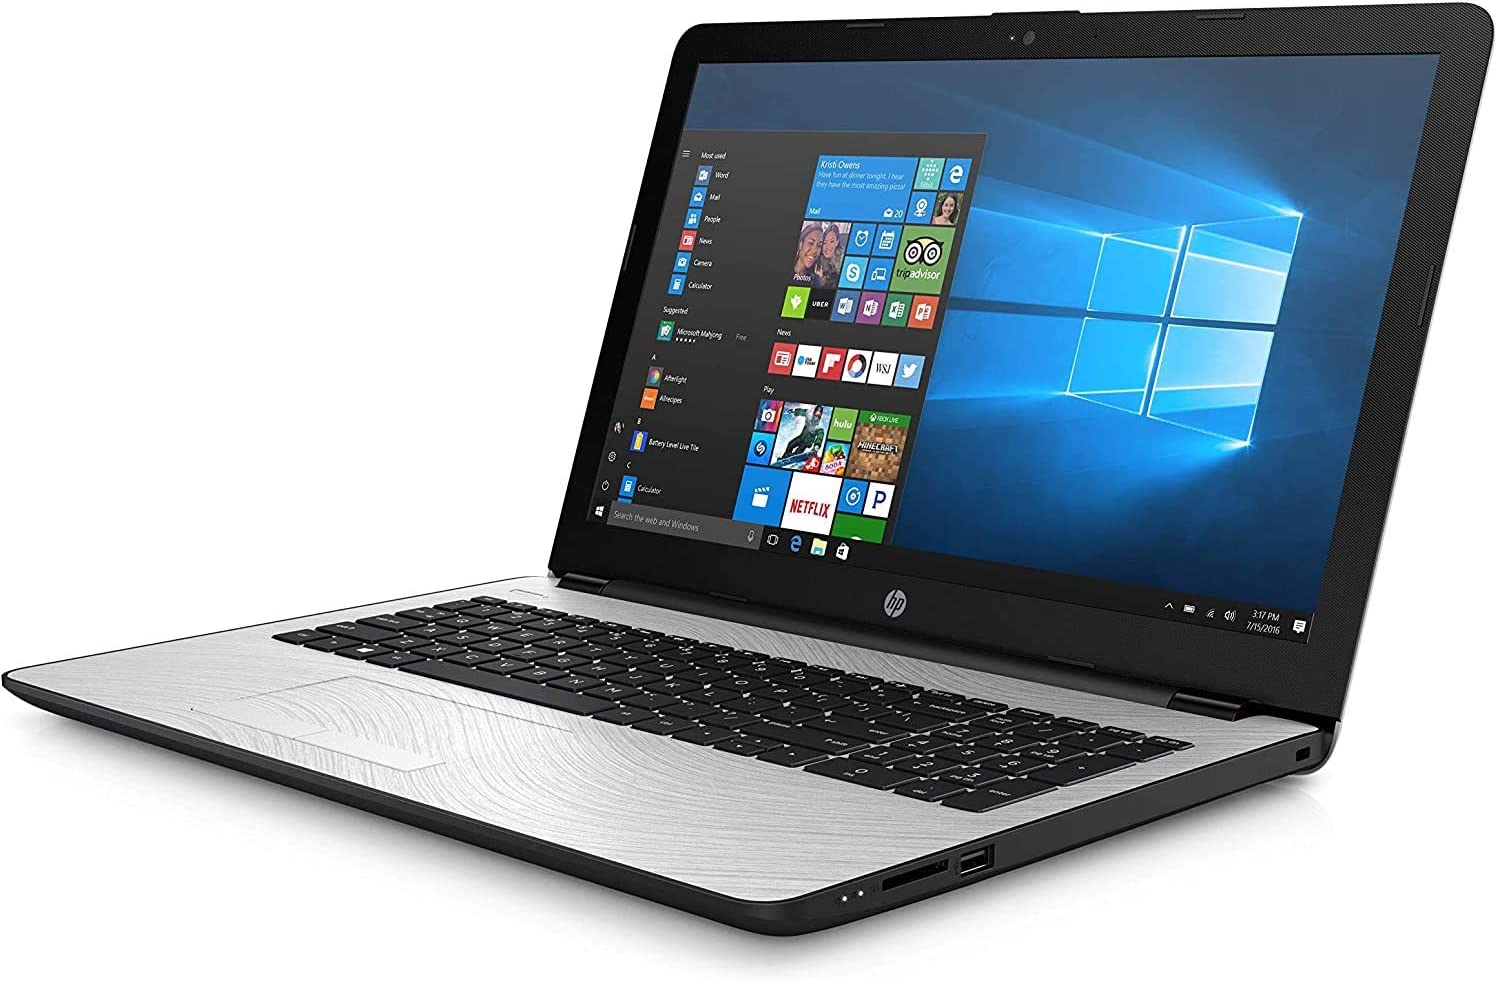 Best Laptop For Internet Browsing